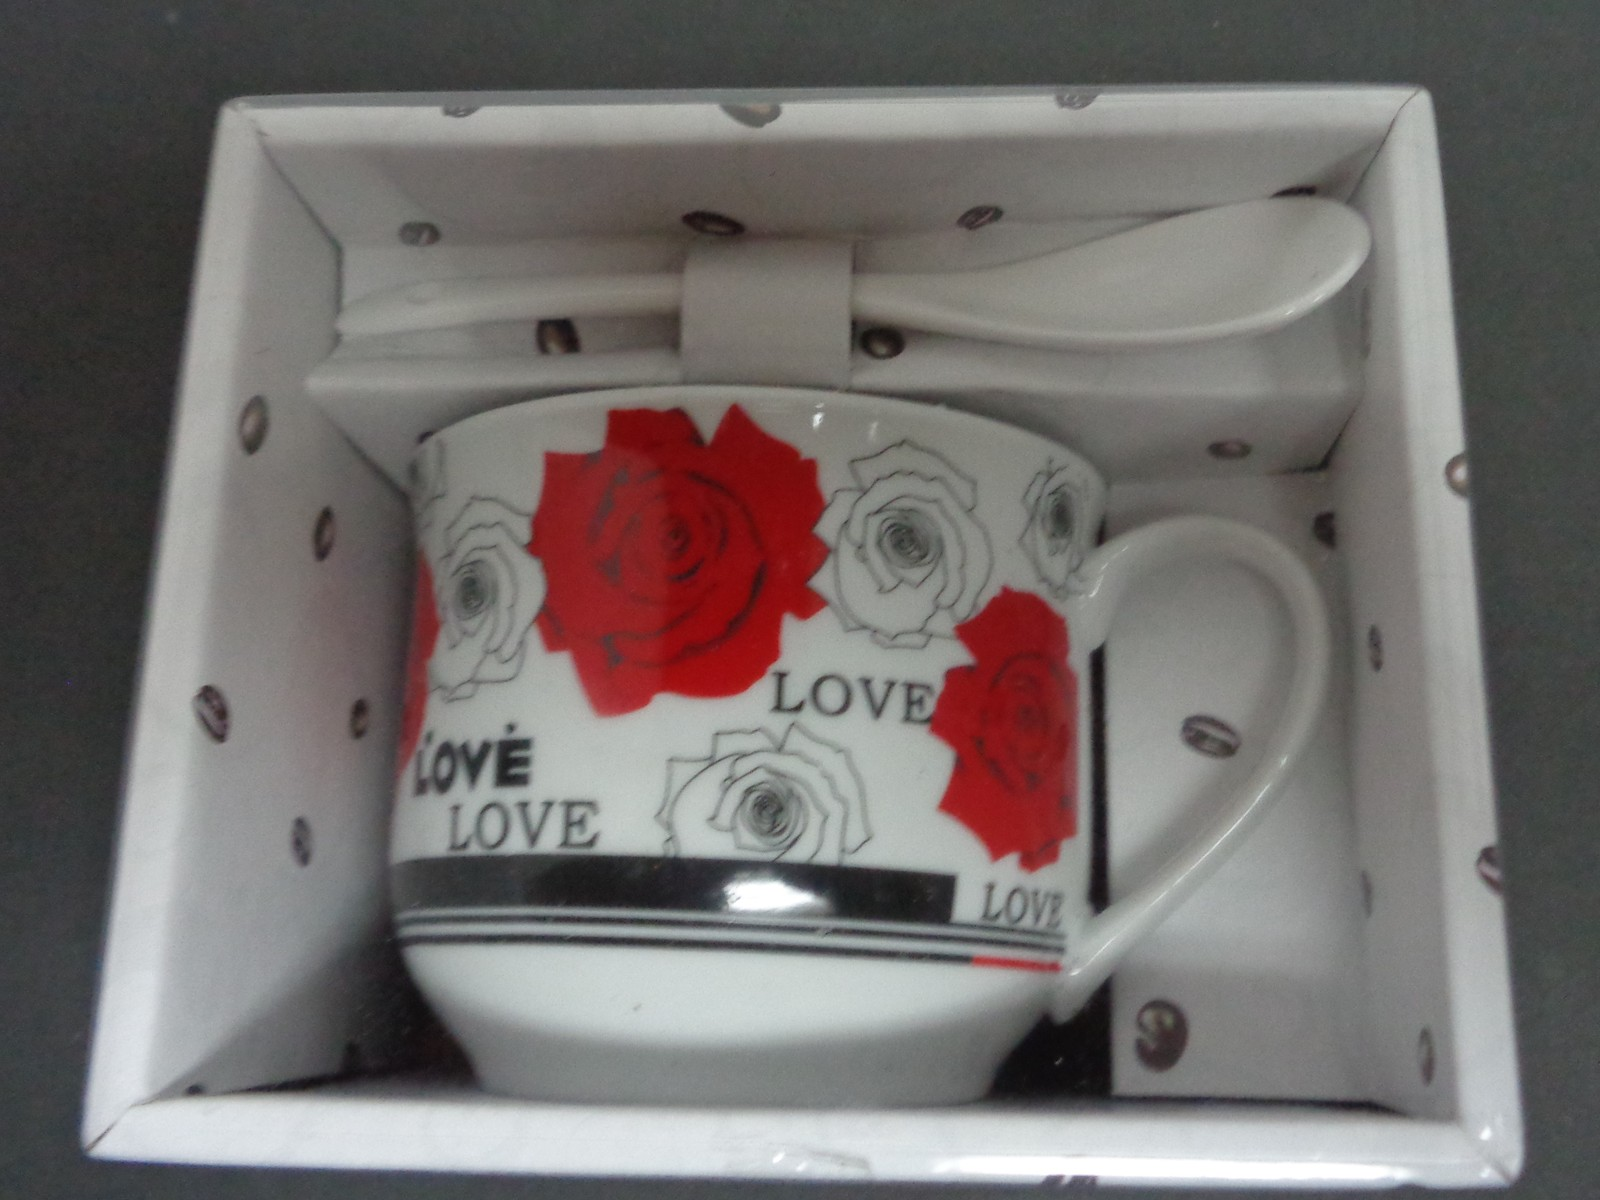 Porcelain Ceramic Coffee Cup & Stir Spoon Set NIB White Rose Love